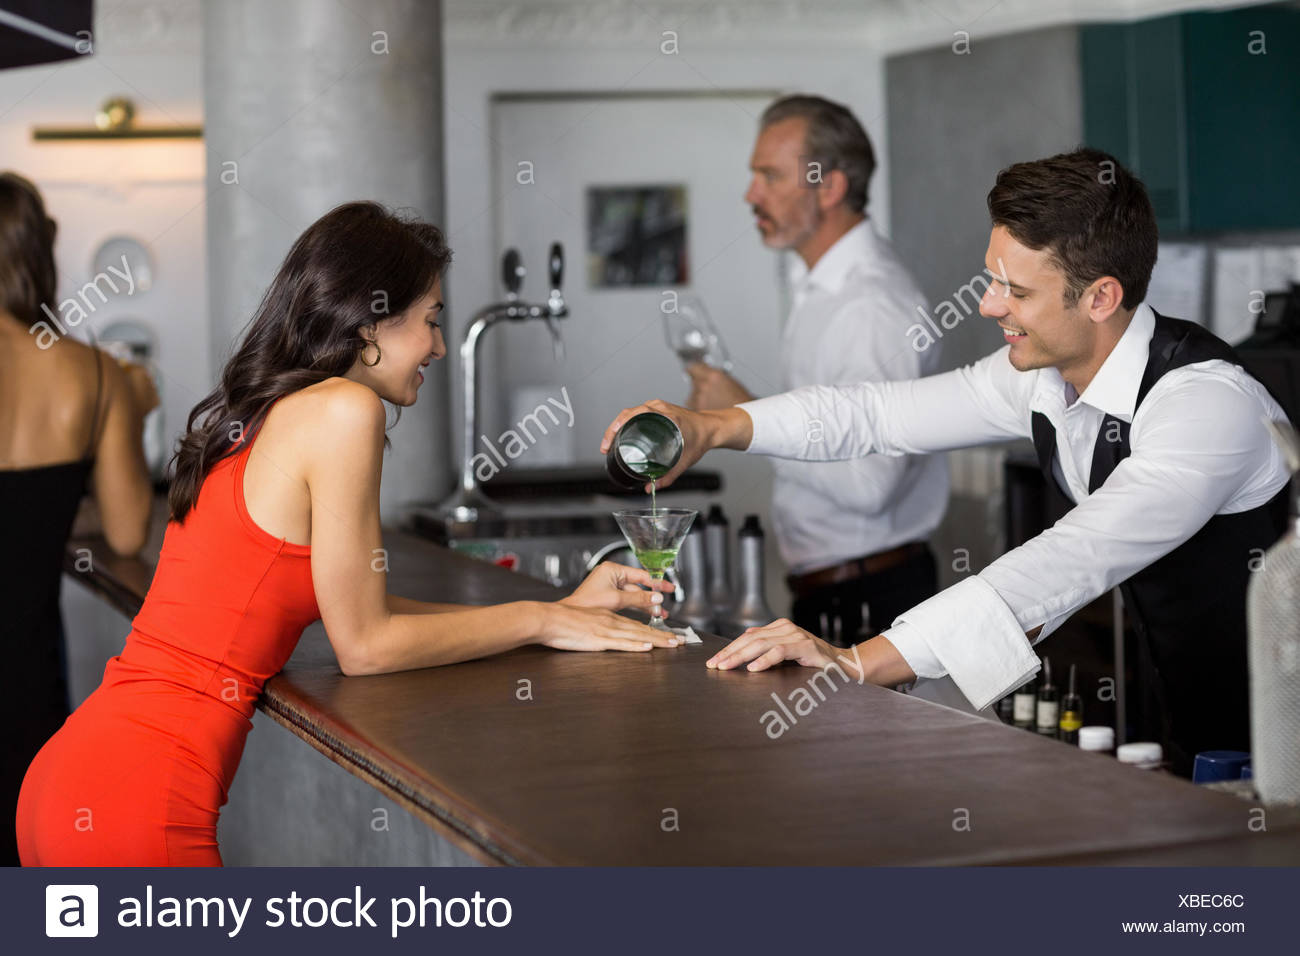 Waiter pouring cocktail into cocktail glass - Stock Image